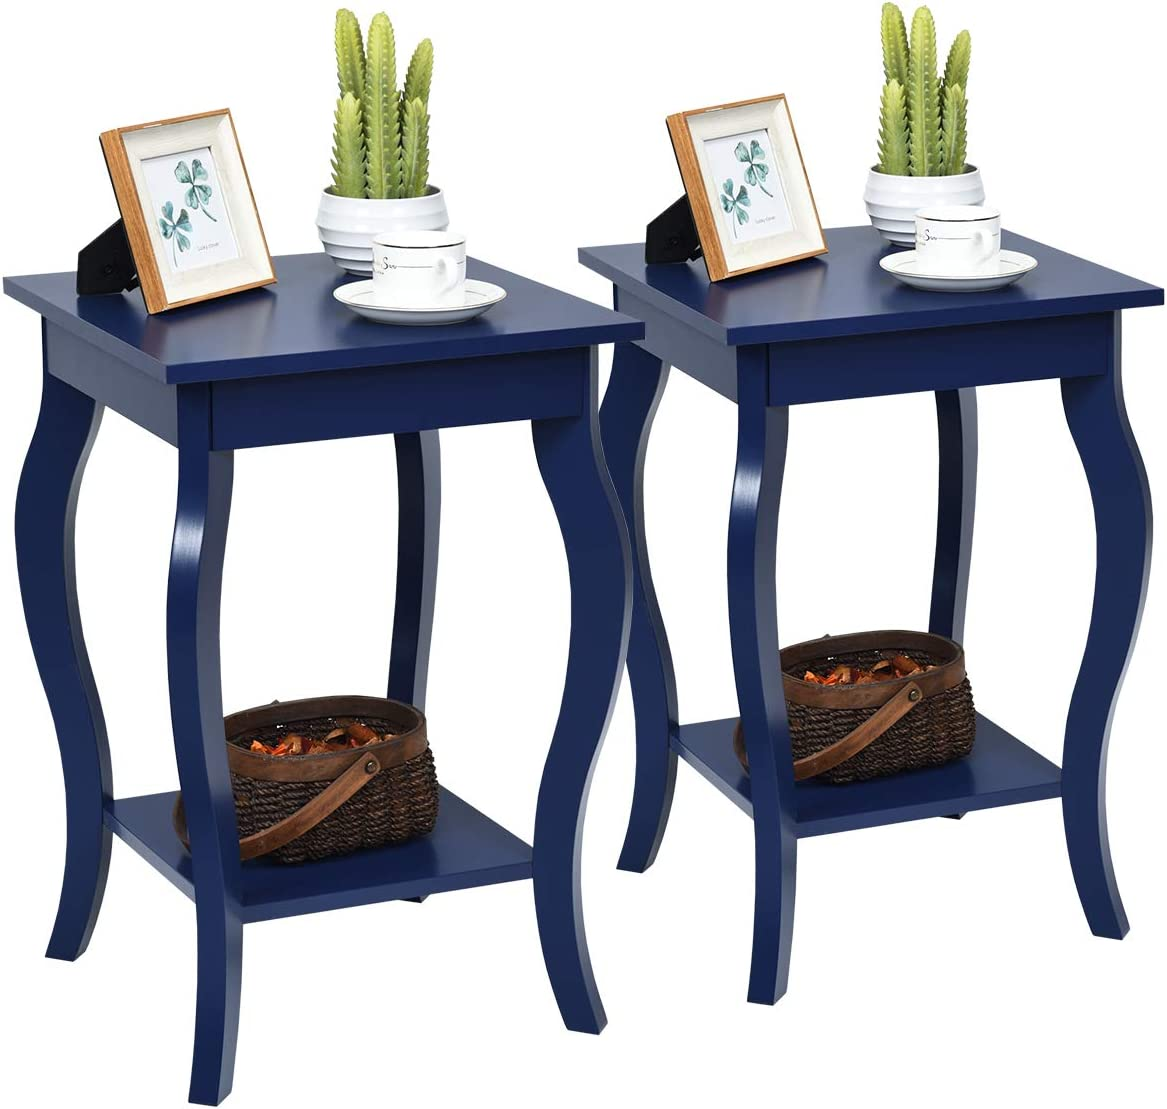 Giantex End Table 16 W Storage Shelf Curved Legs Home Furniture for Living Room Accent Sofa Side Table Nightstand 2, Blue